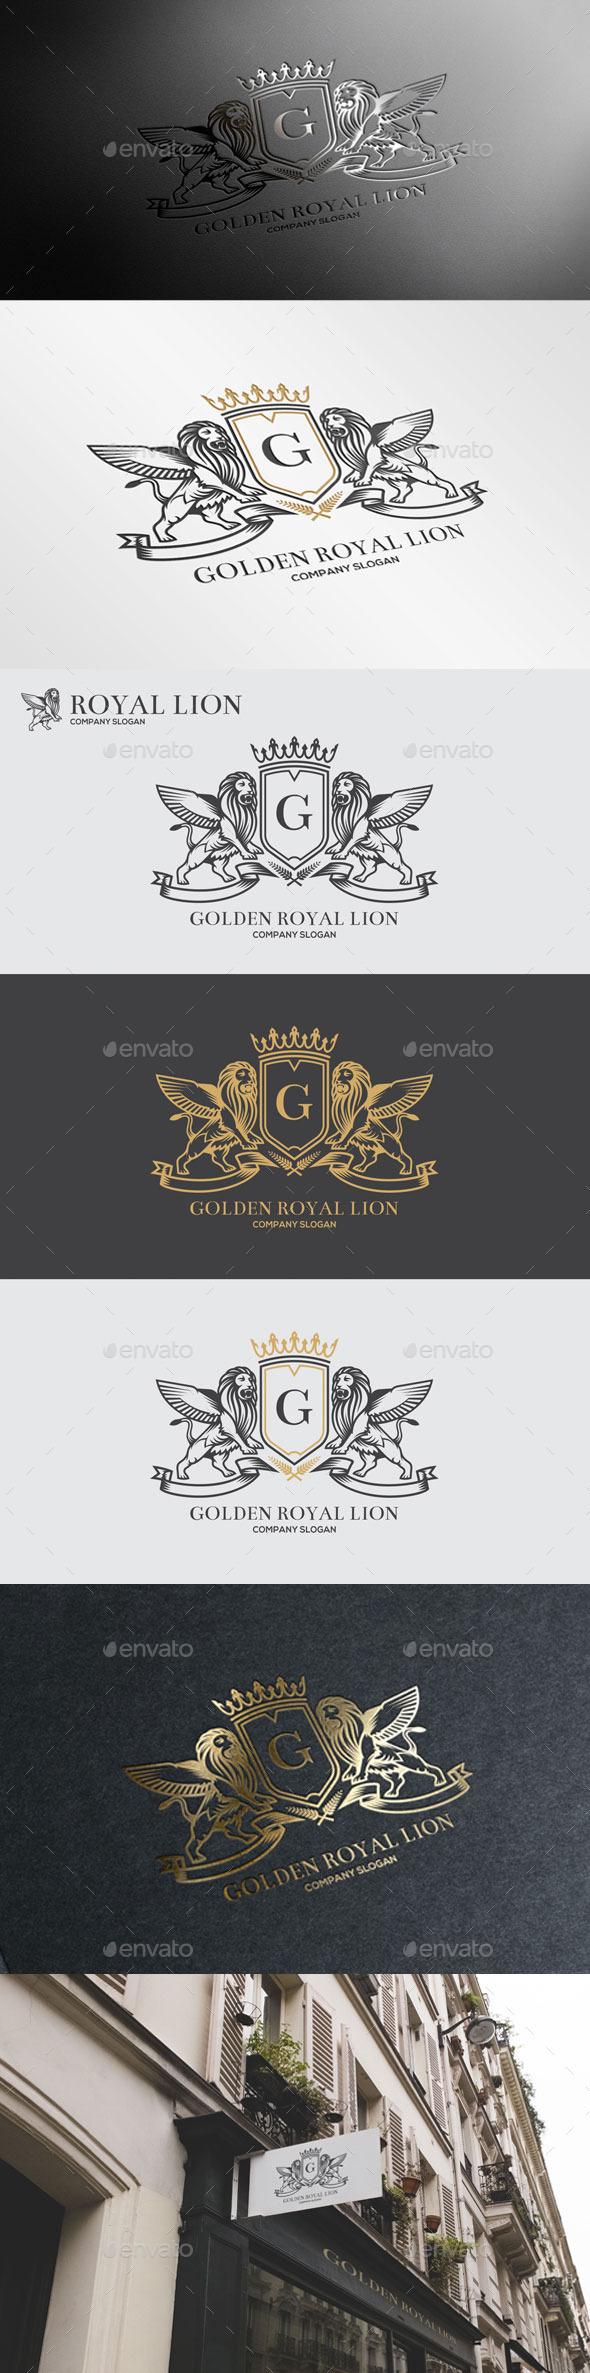 GraphicRiver Golden Royal Lion Vol.4 10906428